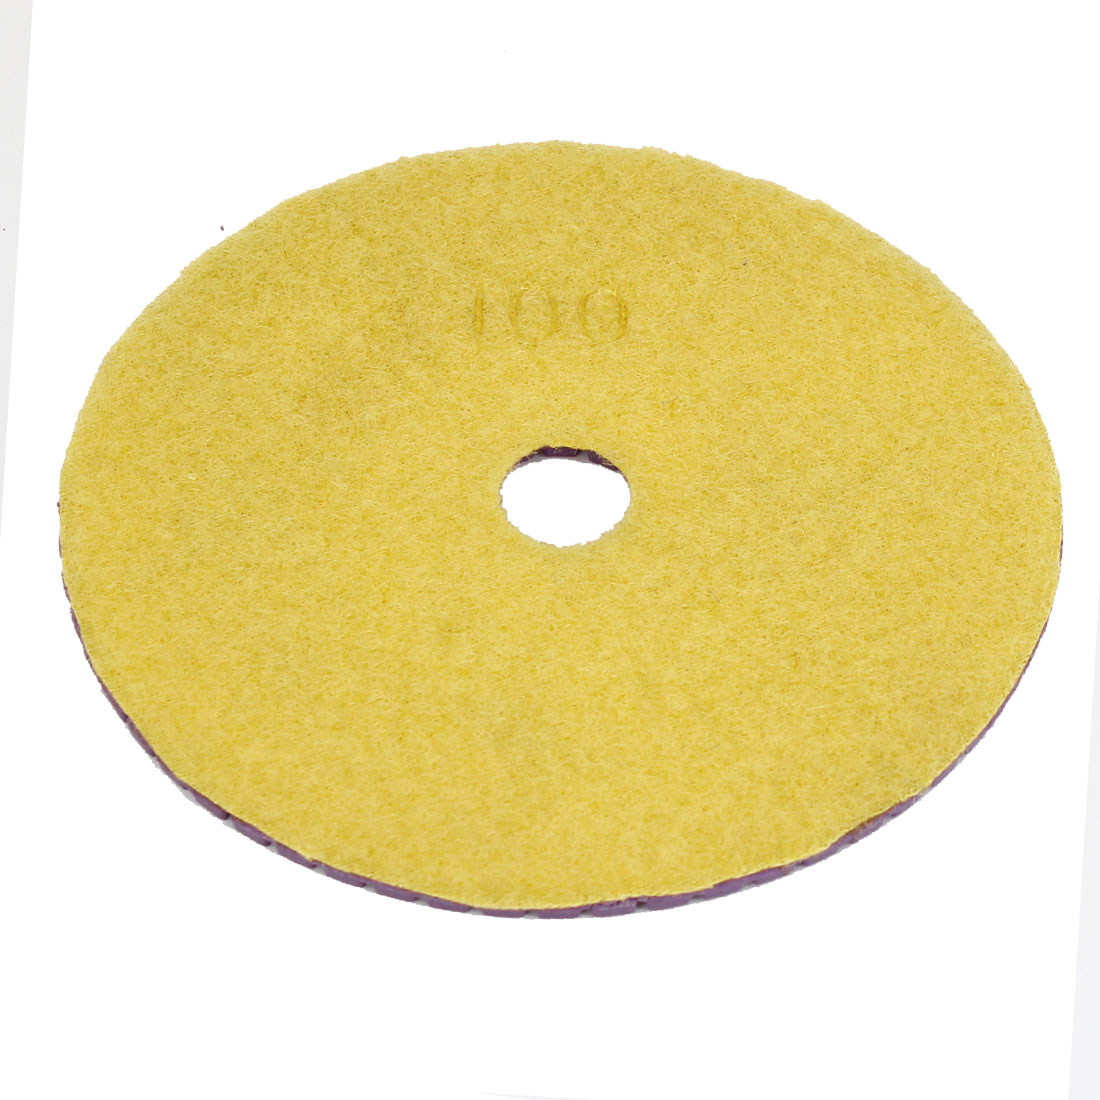 "4.8"" Dia Concrete Diamond Yellow Polisher Polishing Buffer Pad 100 Grit"